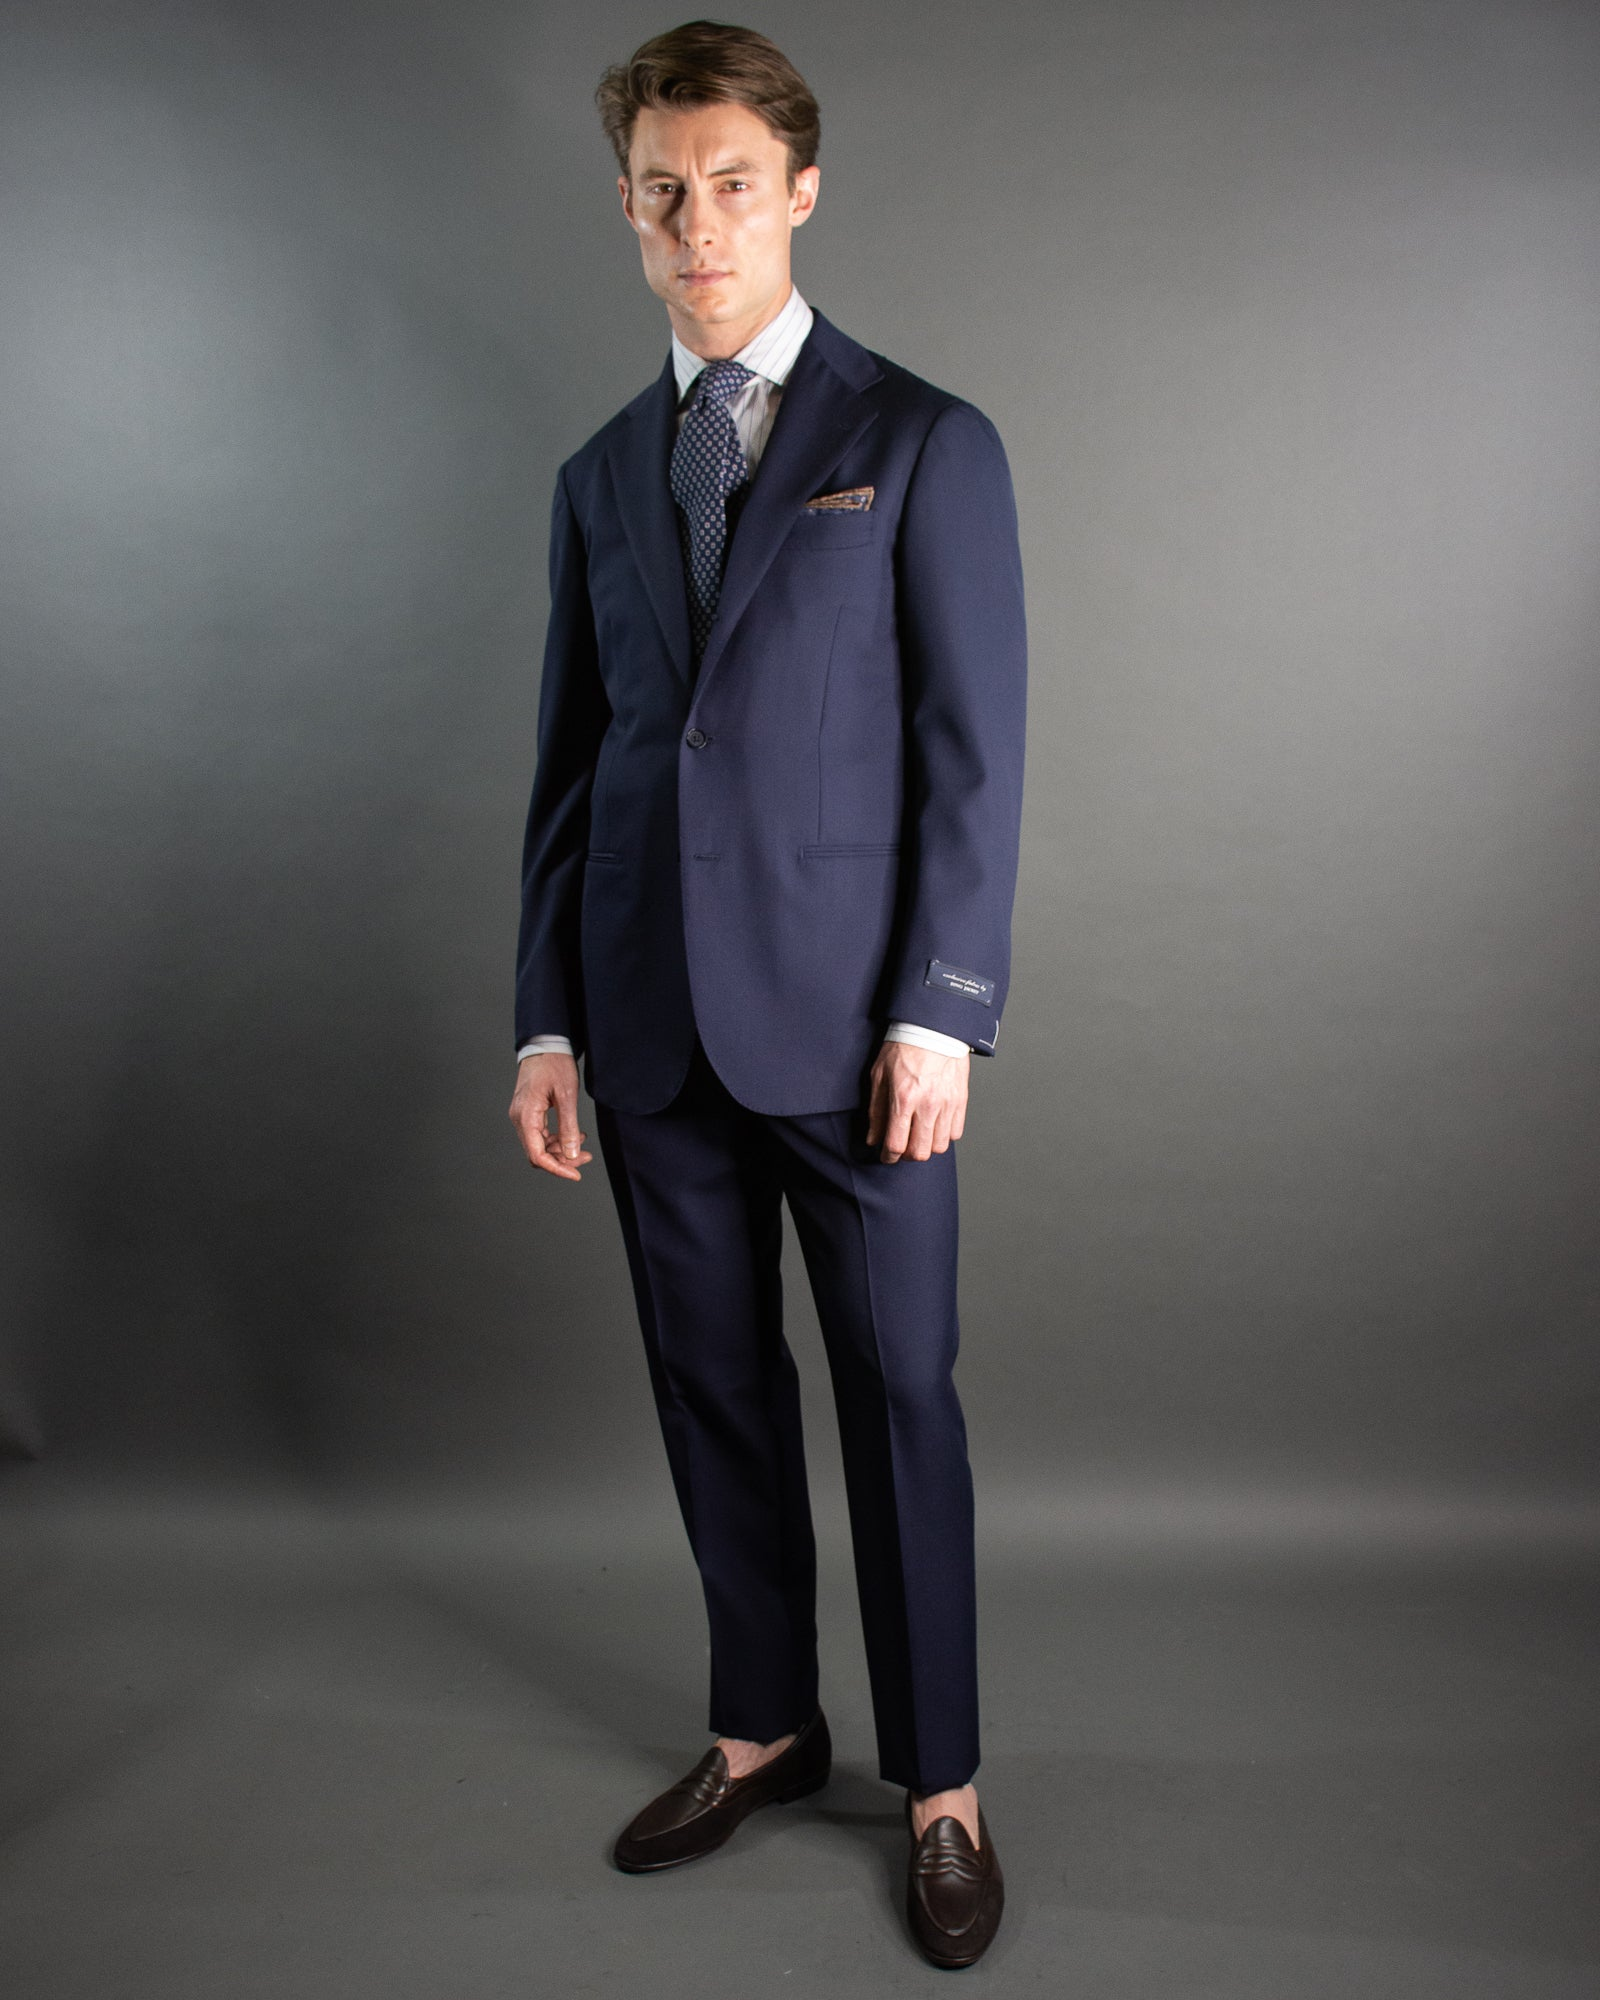 RING JACKET Solid Navy Suit